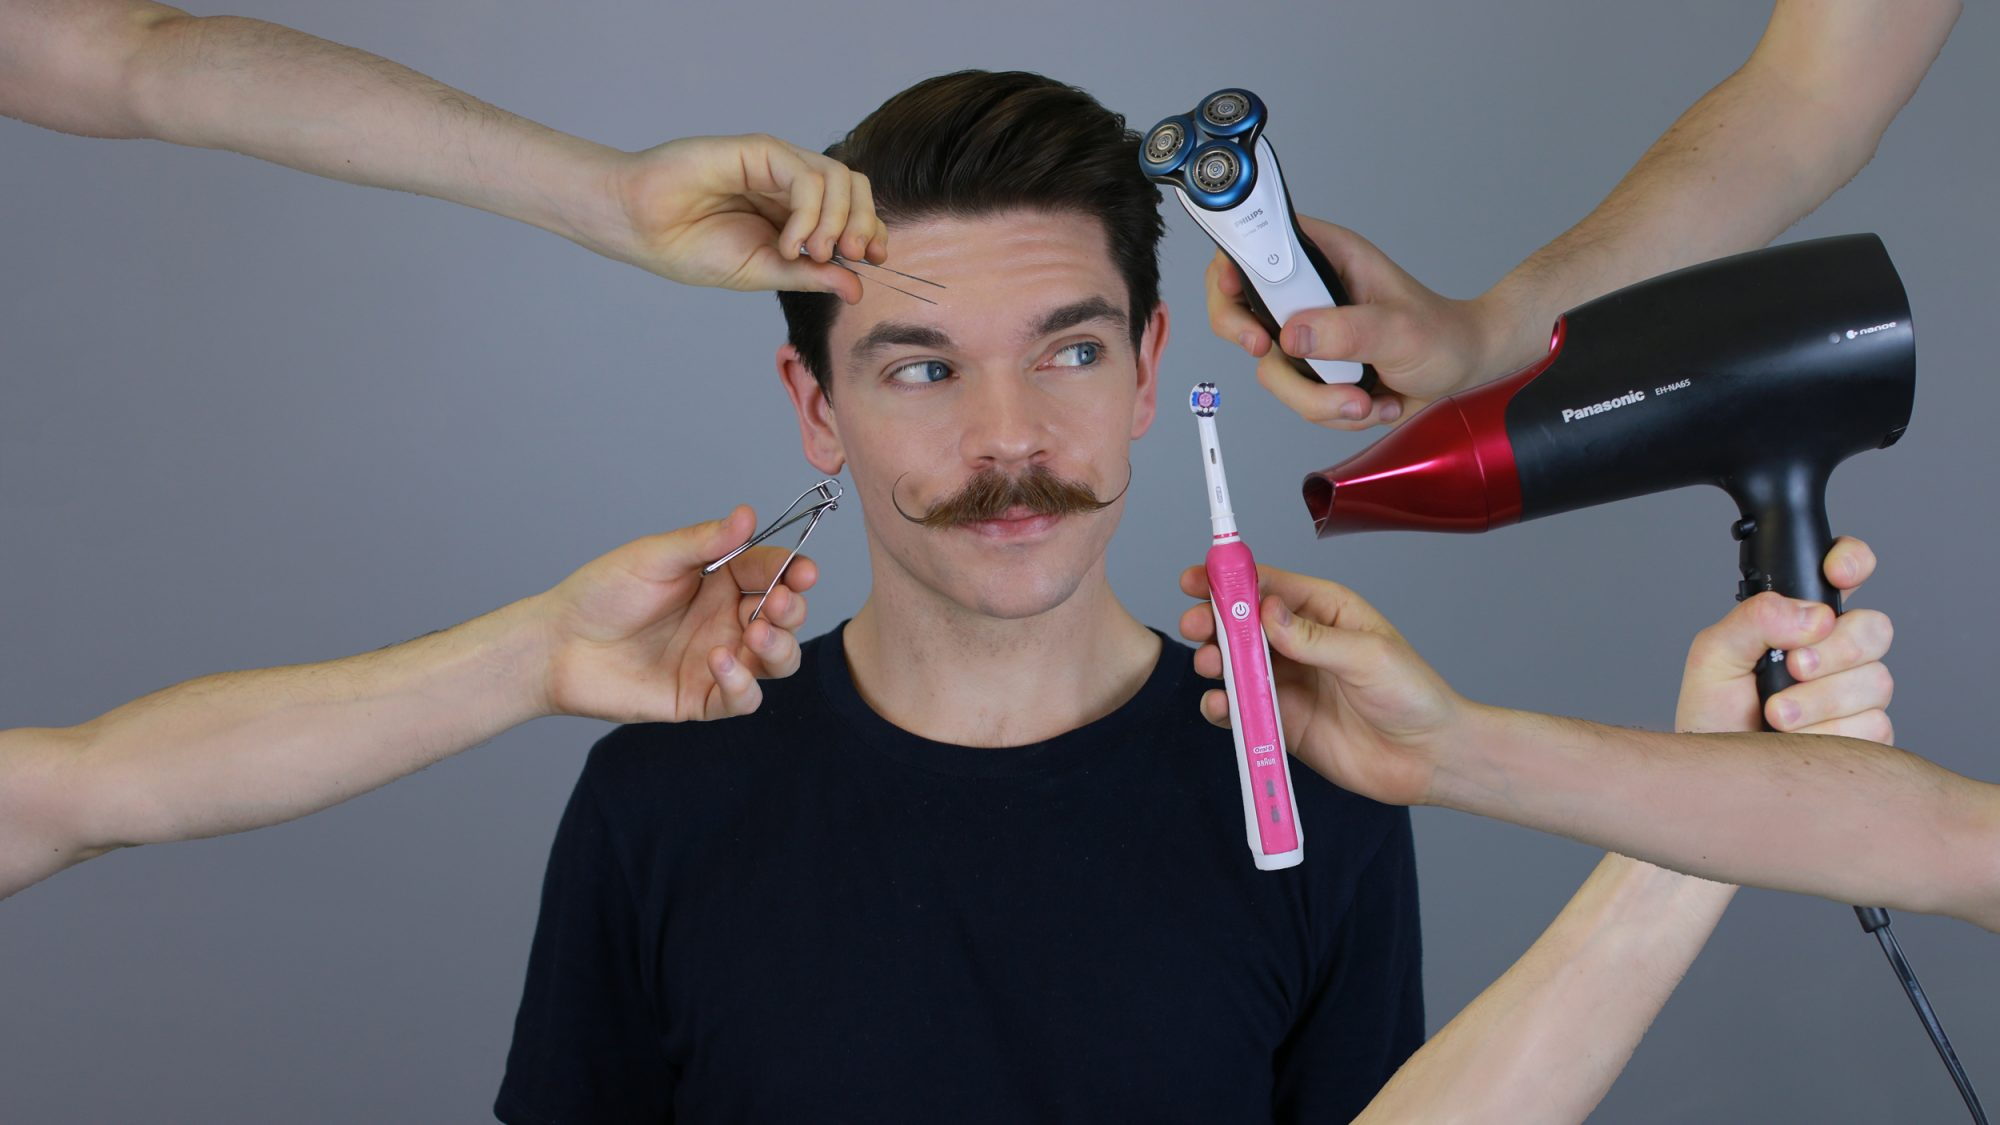 Boots Grooming Tools